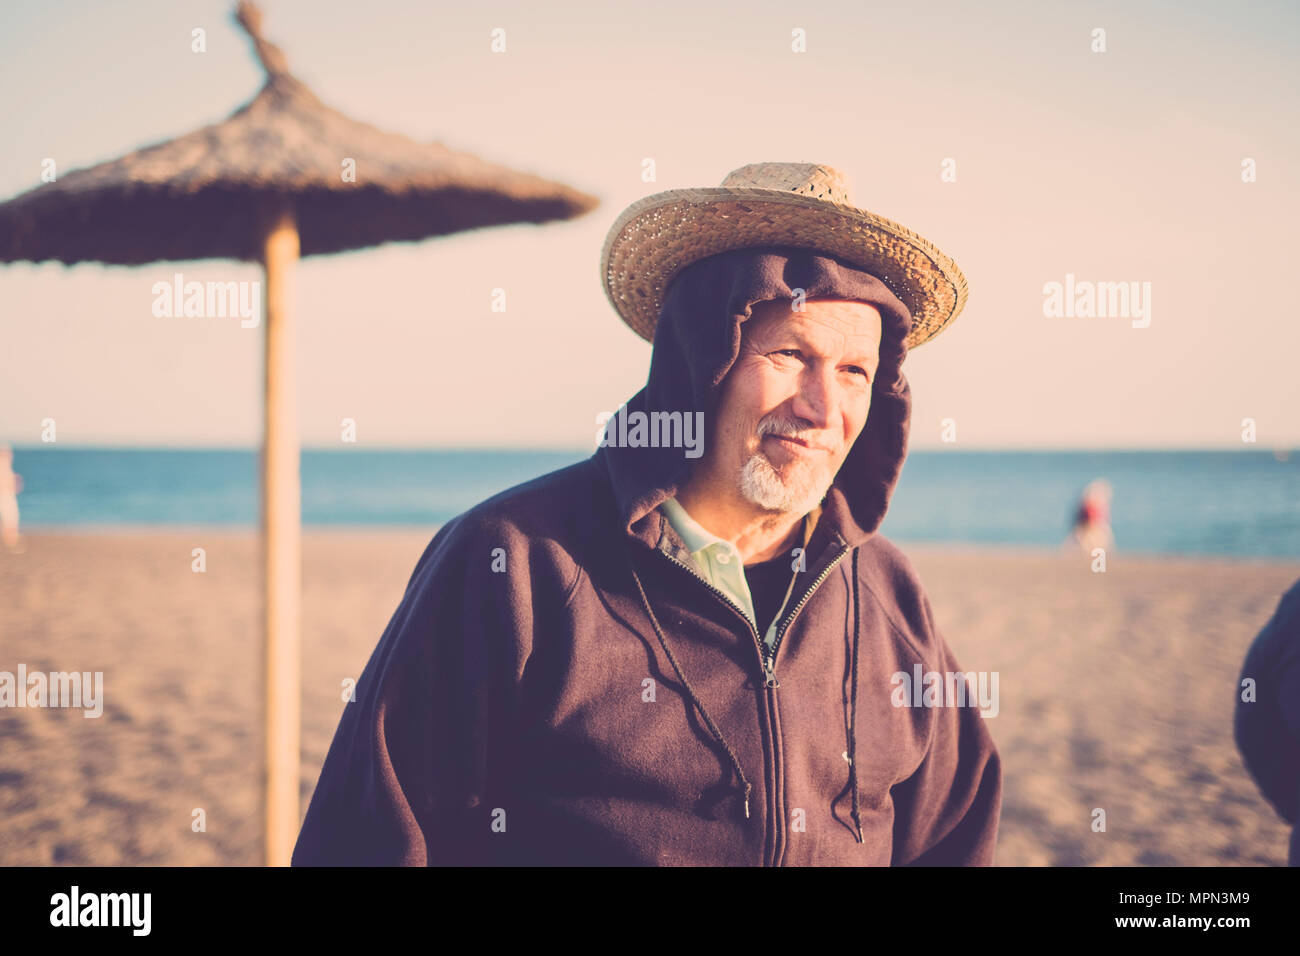 nice funny senior man with double hat at the beach in winter. vintge tones. smile and sunny light on his face - Stock Image